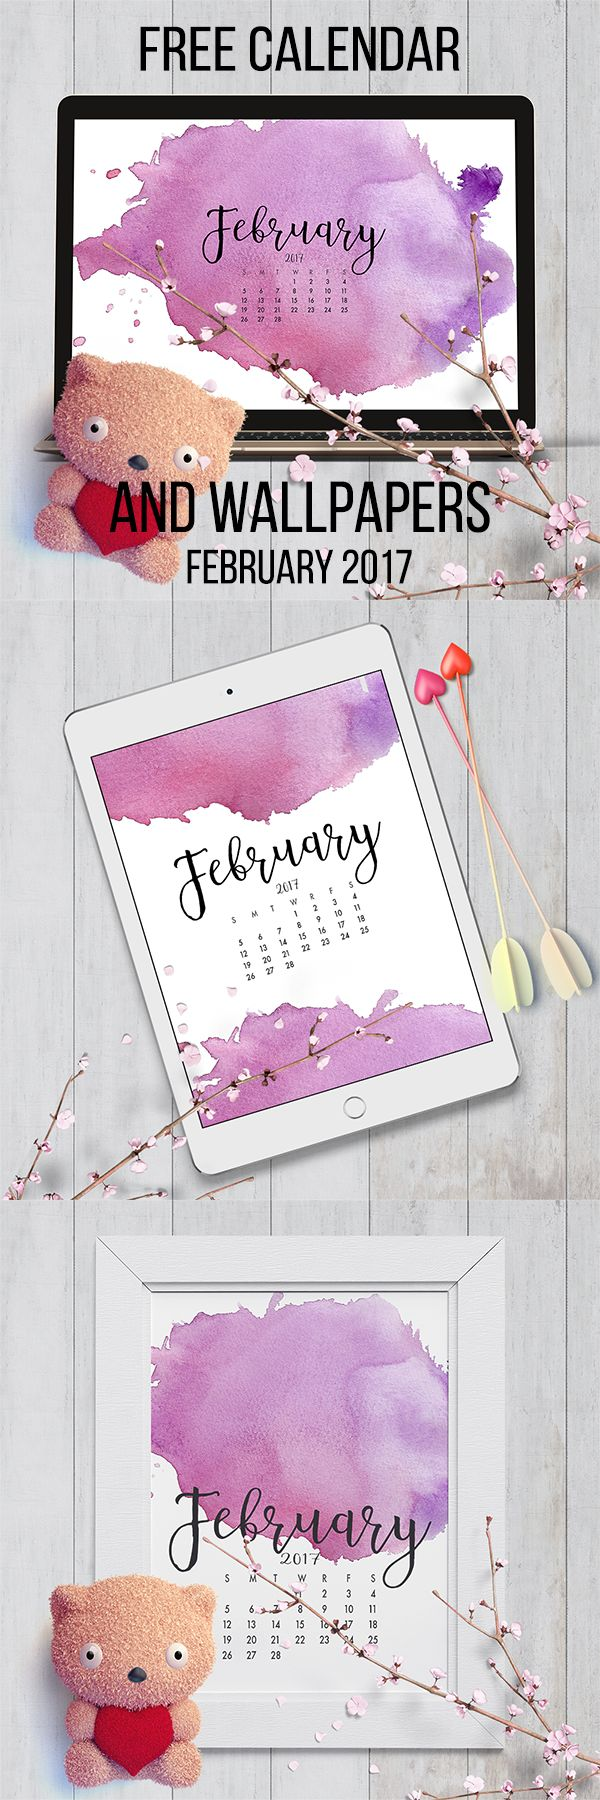 February 2017 Free Calendar and Wallpapers - Seaside Digital